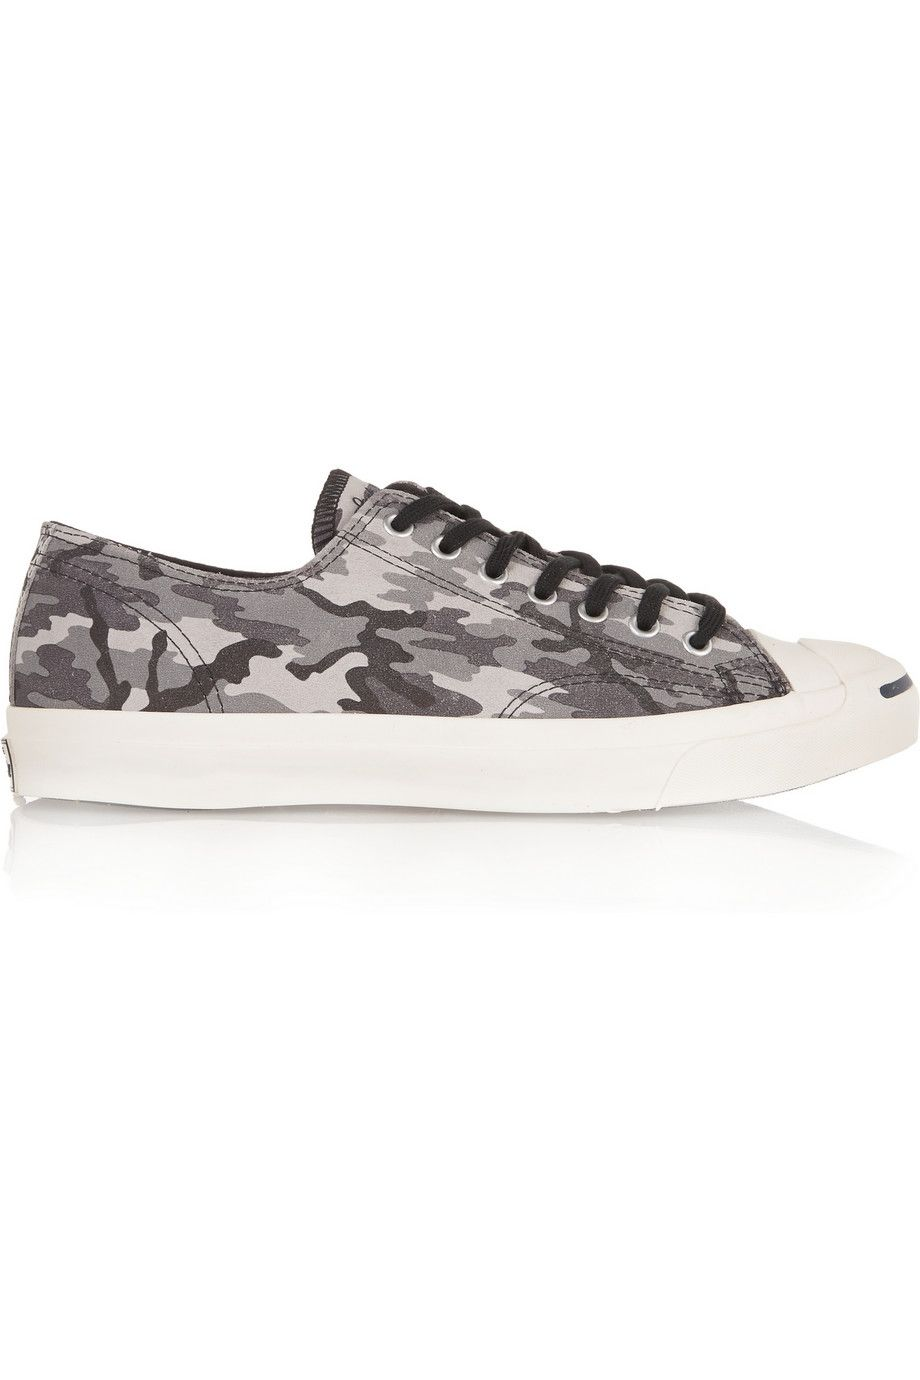 8442365b349190 CONVERSE Jack Purcell Camouflage-Print Canvas Sneakers.  converse  shoes   sneakers